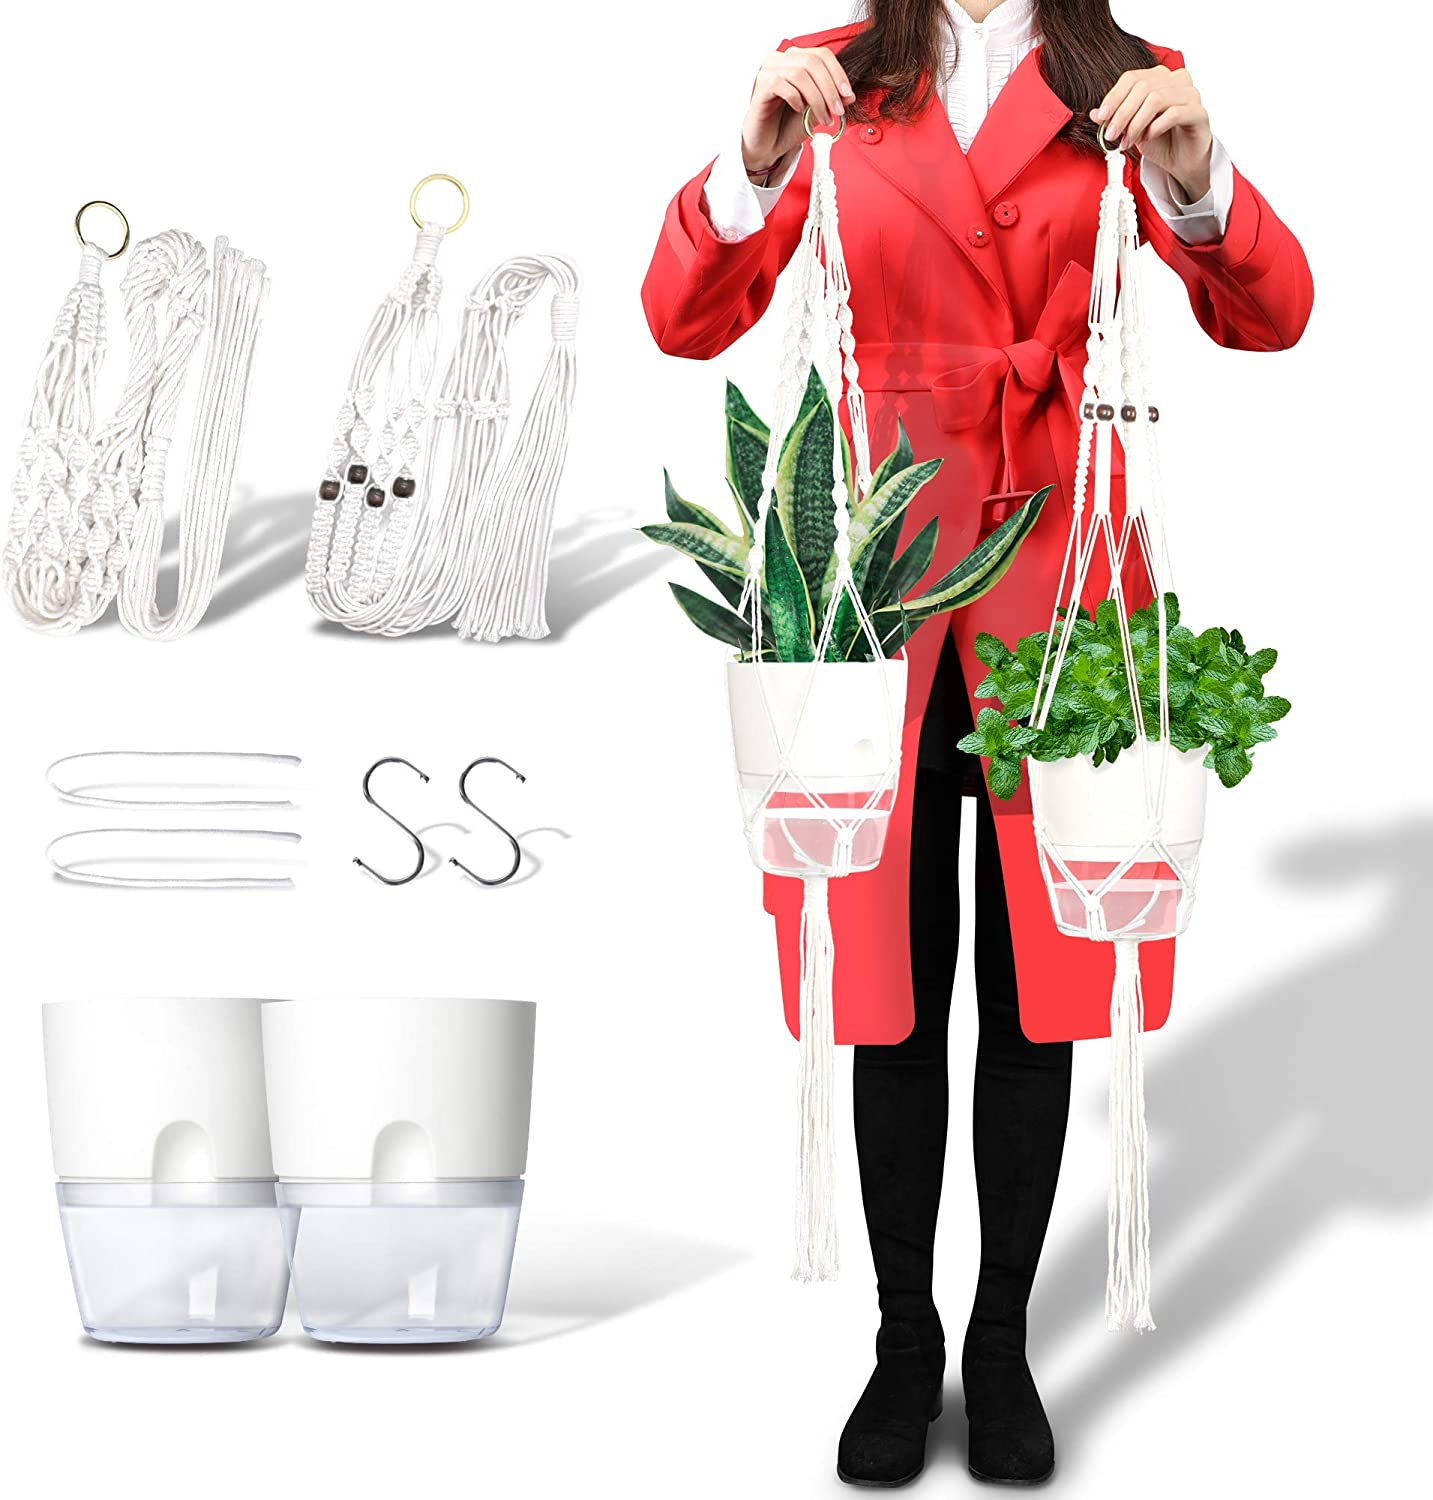 South Ocean Plant Hangers Omaha Mall with 5.9'' Pots In 2 shopping - Included of Set